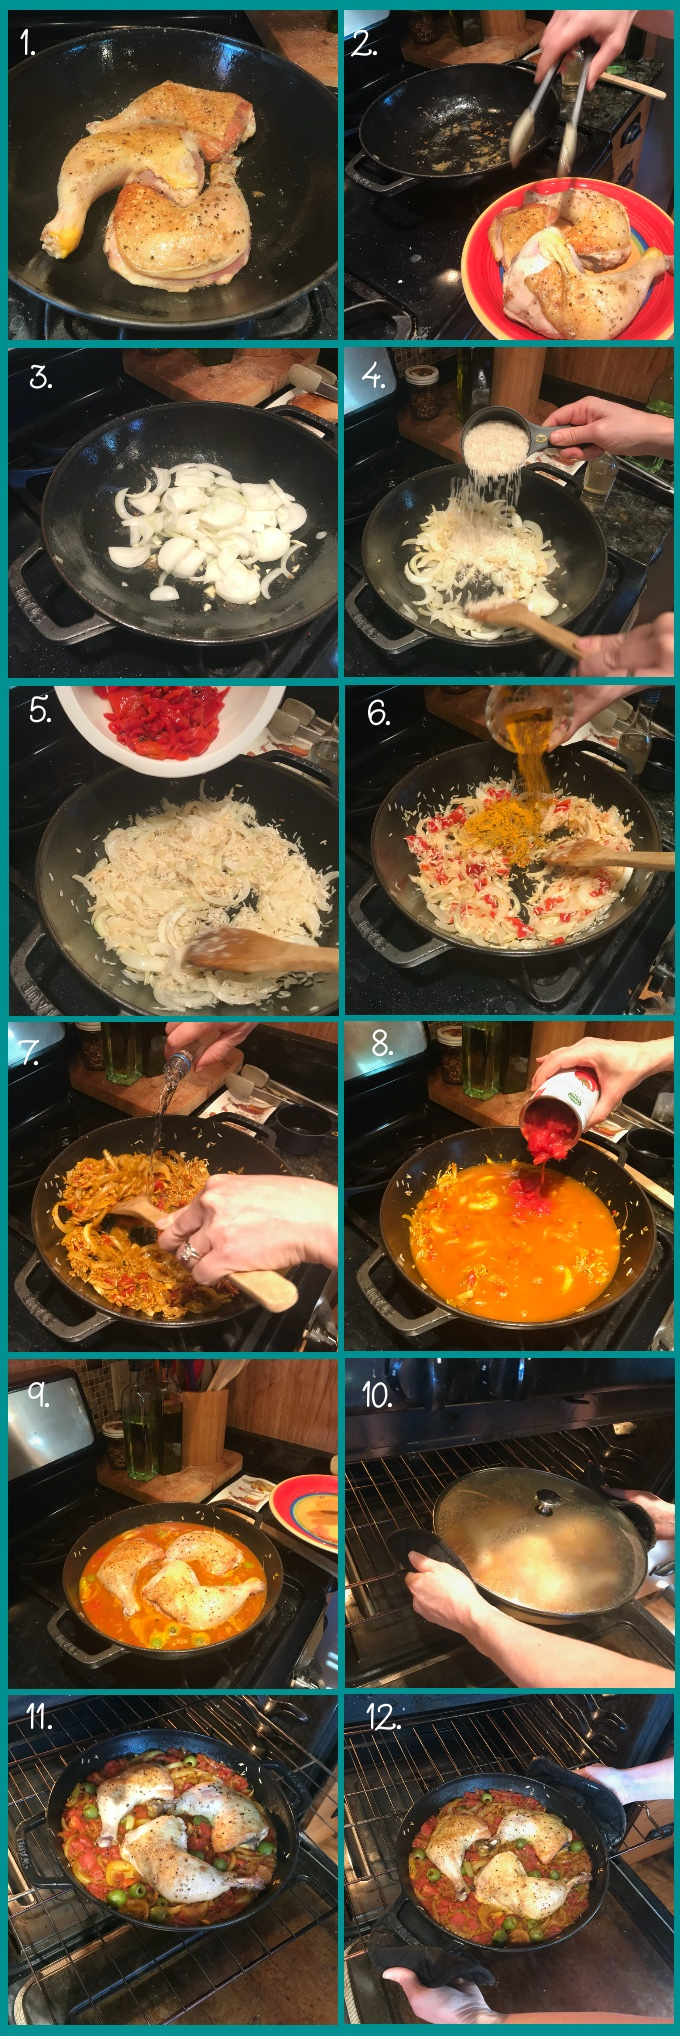 How to make One-Pan Arroz con Pollo. 1. Preheat oven to 350 degrees F. In a deep, heavy-bottomed skillet or Dutch oven, warm the vegetable oil over medium-high heat. Add the chicken, skin side down. Cook until golden brown on both sides, about 5 minutes per side. (2) Reduce heat to medium-low; remove chicken to a plate and reserve. (3) Wipe excess fat from the pan, then add the onions and sauté until soft and translucent, 6-8 minutes. Add the garlic; sauté for an additional minute. (4–5) Add the rice and roasted pepper to the skillet; sauté 1 minute. (6) Add the spices; sauté an additional minute. (7) Carefully add the wine and stir until absorbed, scraping any brown bits from the bottom of the pan. (8) Add the chicken broth, olives, and tomatoes to the skillet; bring to a simmer. Allow to simmer for about 30 seconds. (9) Arrange the chicken on top of the rice, skin side up. (The dish will be quite soupy at this point and the chicken will be partially submerged. No worries! The rice will absorb it all!) Pour any accumulated juices over the top. (10) Lid the skillet and place in the oven. Bake for 35 minutes. (11) Remove the lid and bake an additional 10-15 minutes (45-50 in total), or as necessary until the chicken is cooked through (165 degrees F), liquid is absorbed, and the rice is tender. (12) Remove from the oven and allow to rest for 10 minutes. Squeeze lemon juice over the dish and serve. Enjoy!